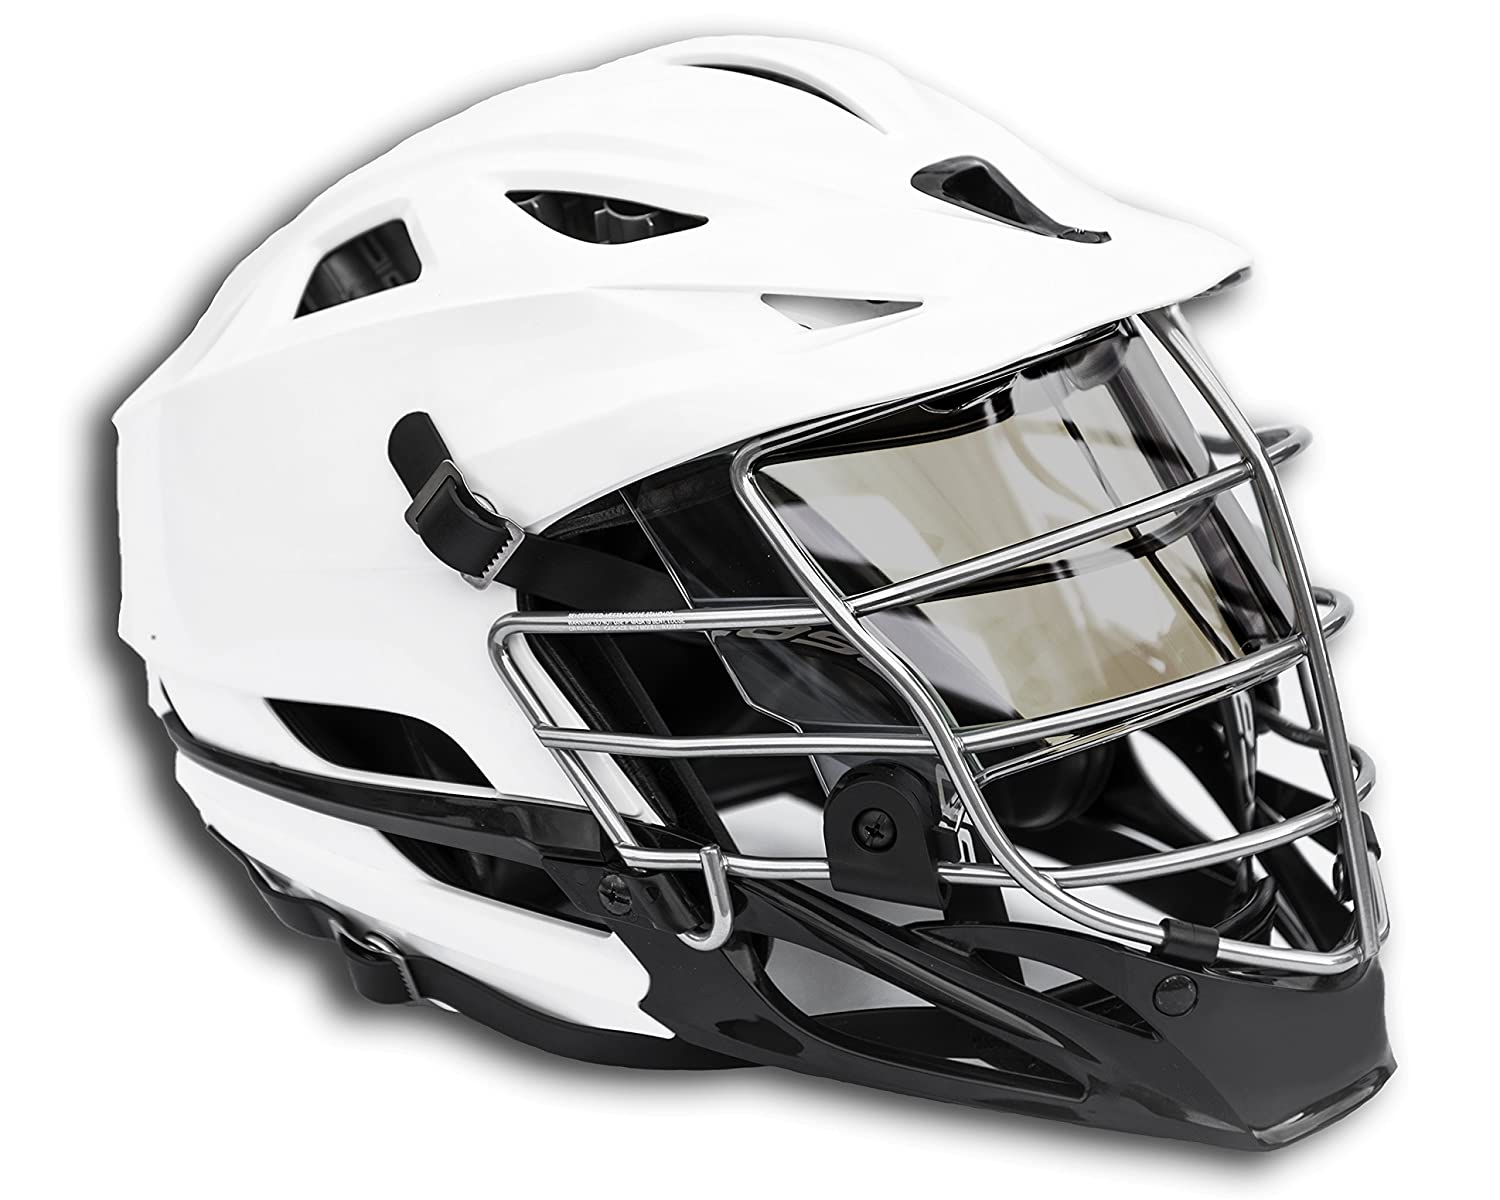 d559a4a69a4 Amazon.com   EliteTek LAX Lacrosse Color Visor Eye Shield fits Cascade  Helmets (Black Gold Smoked